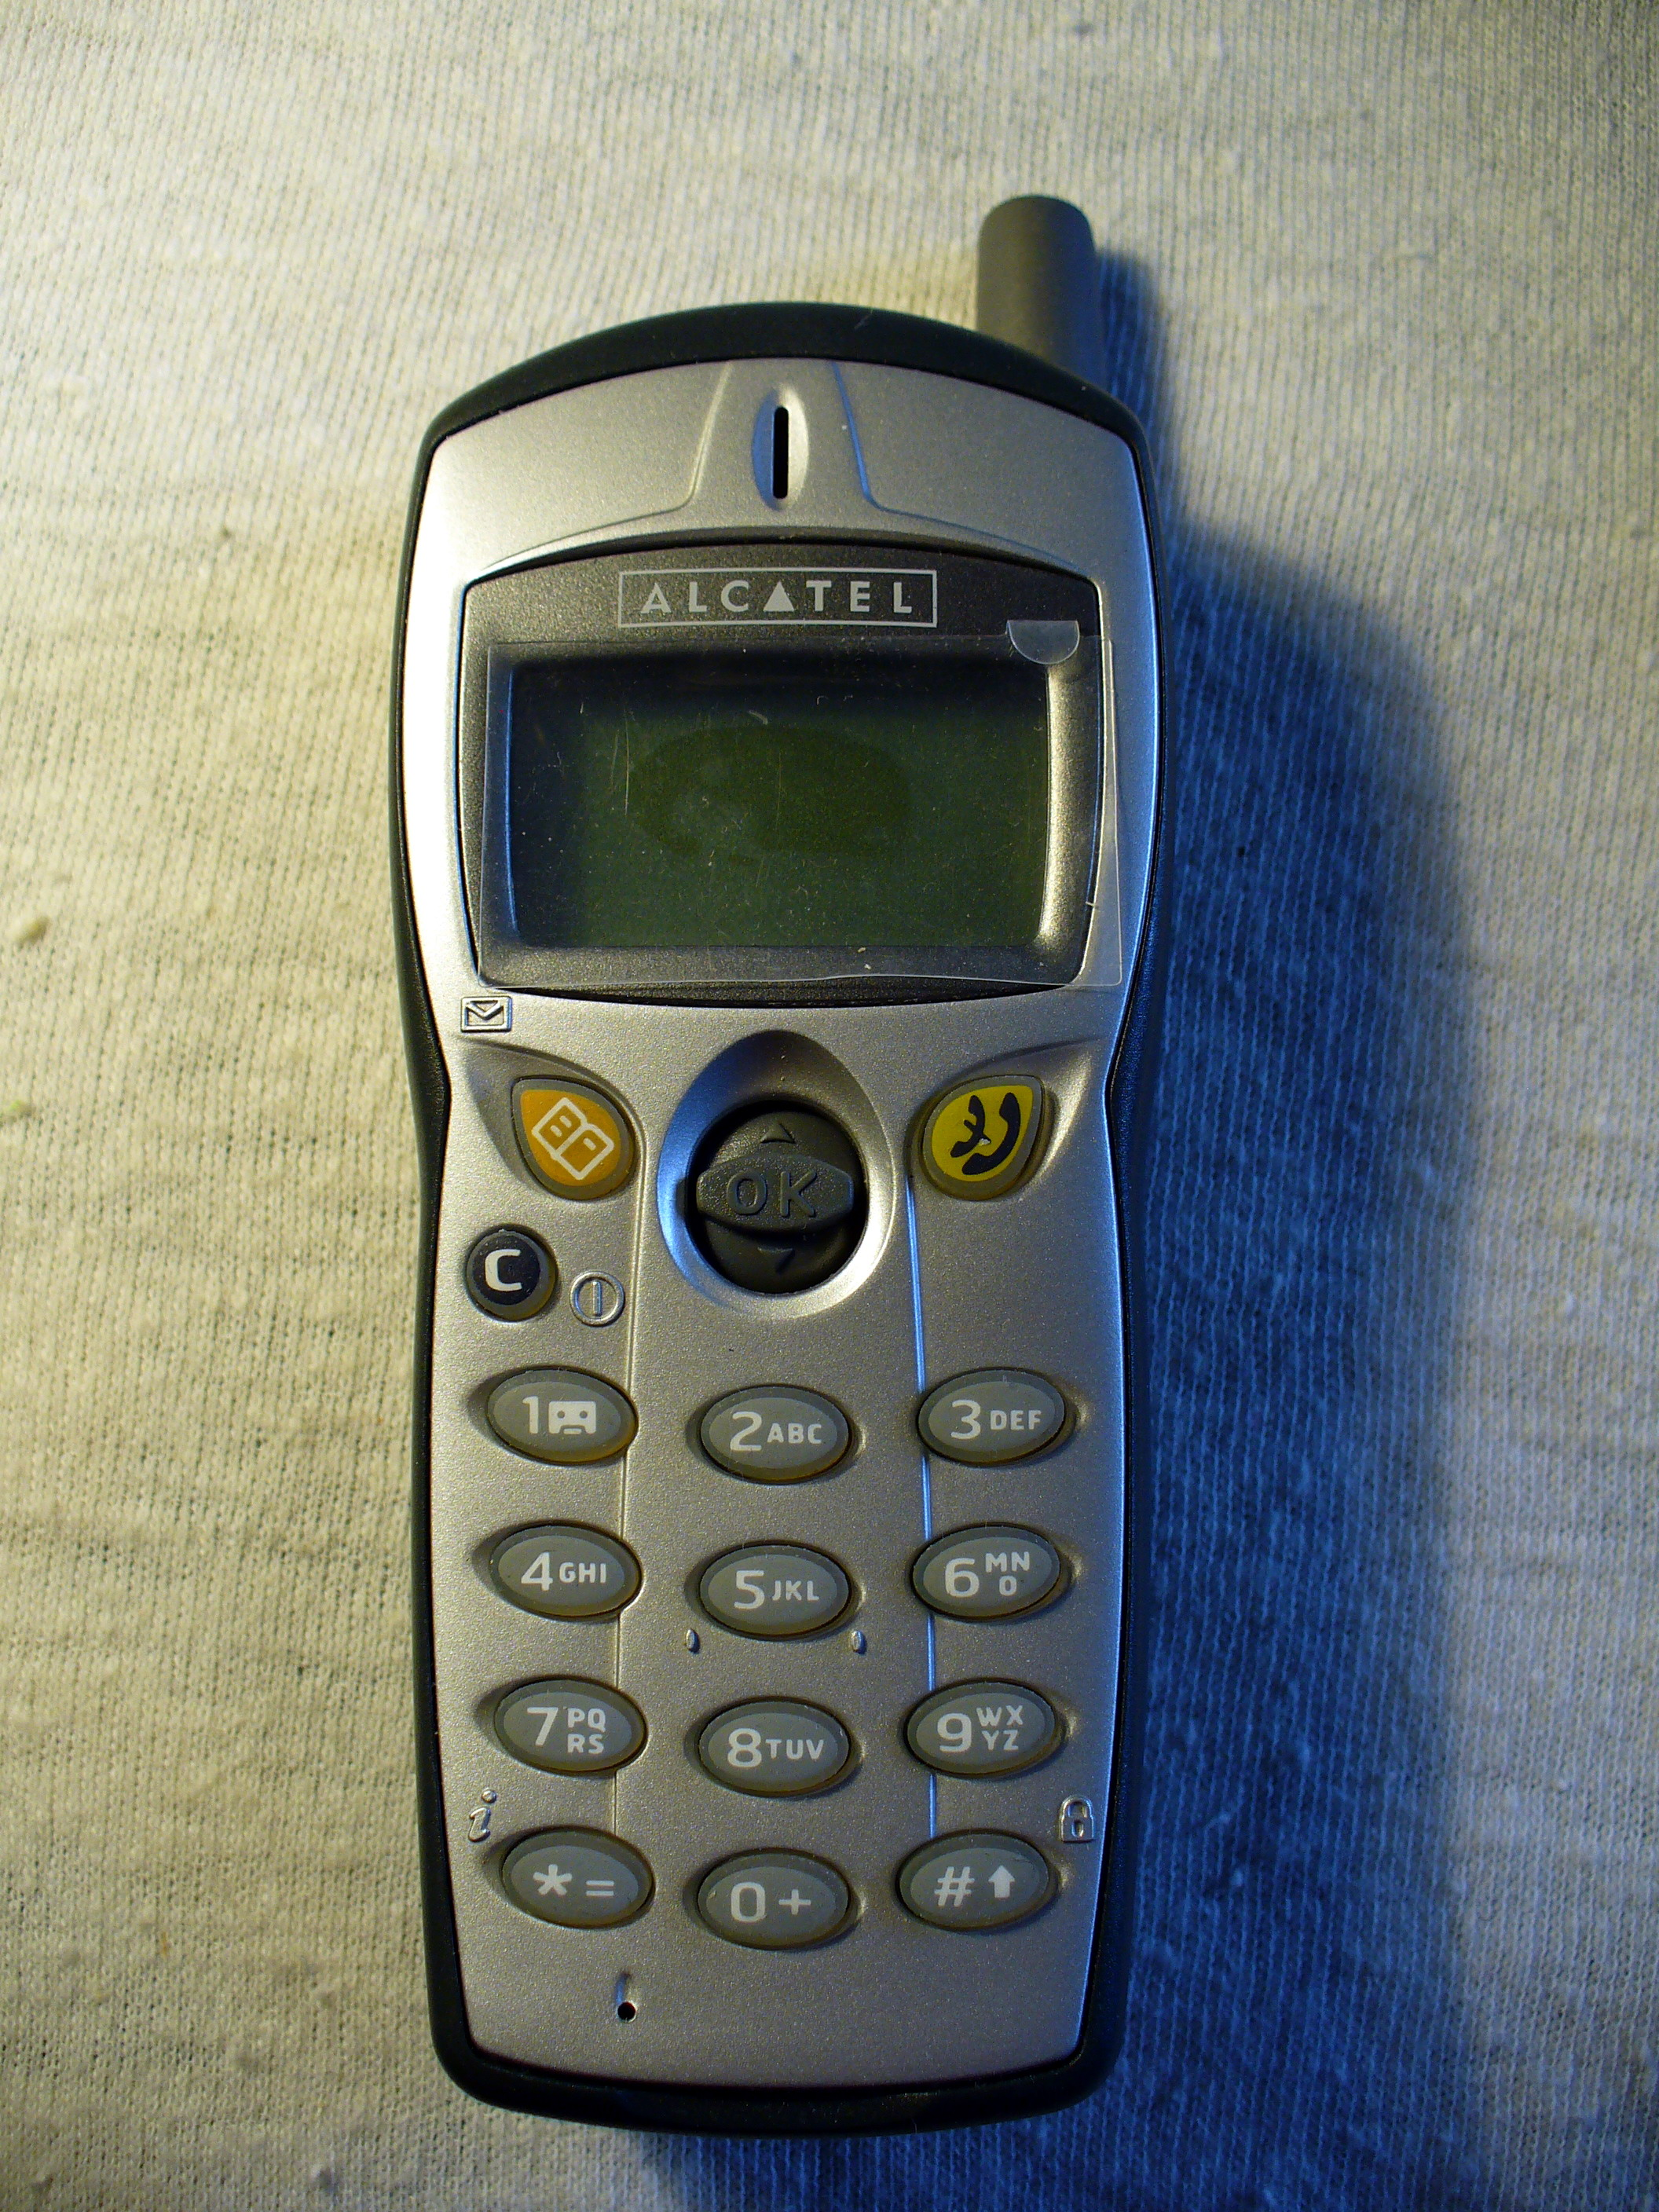 Alcatel One Touch 300   Wikipedia  the free encyclopedia